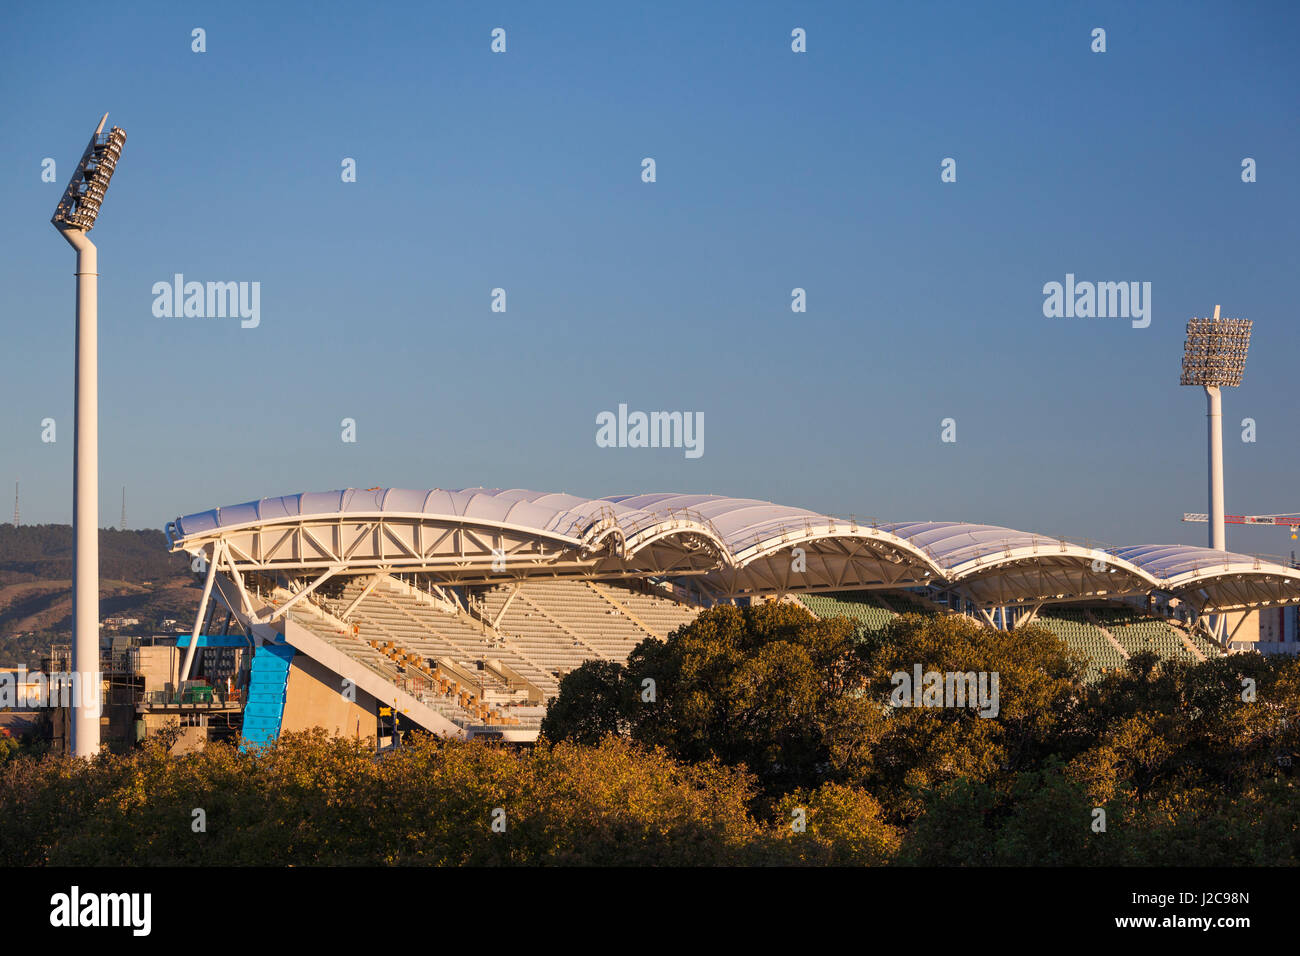 Australia, Adelaide, Adelaide Oval, elevated view - Stock Image